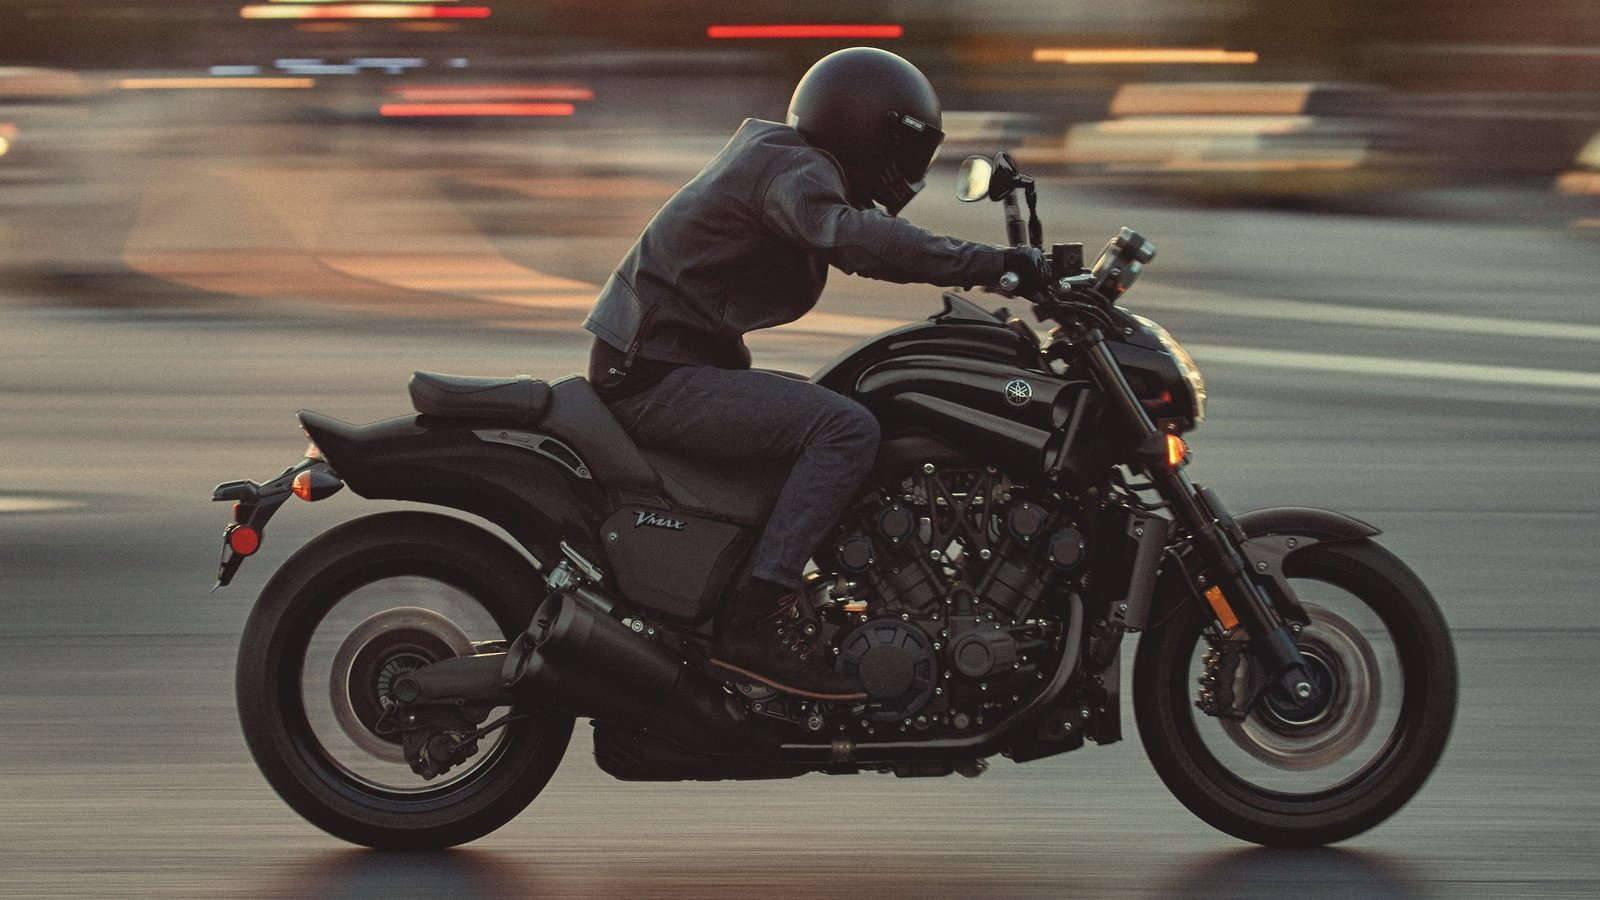 2016 - 2019 Yamaha VMAX | Top Speed